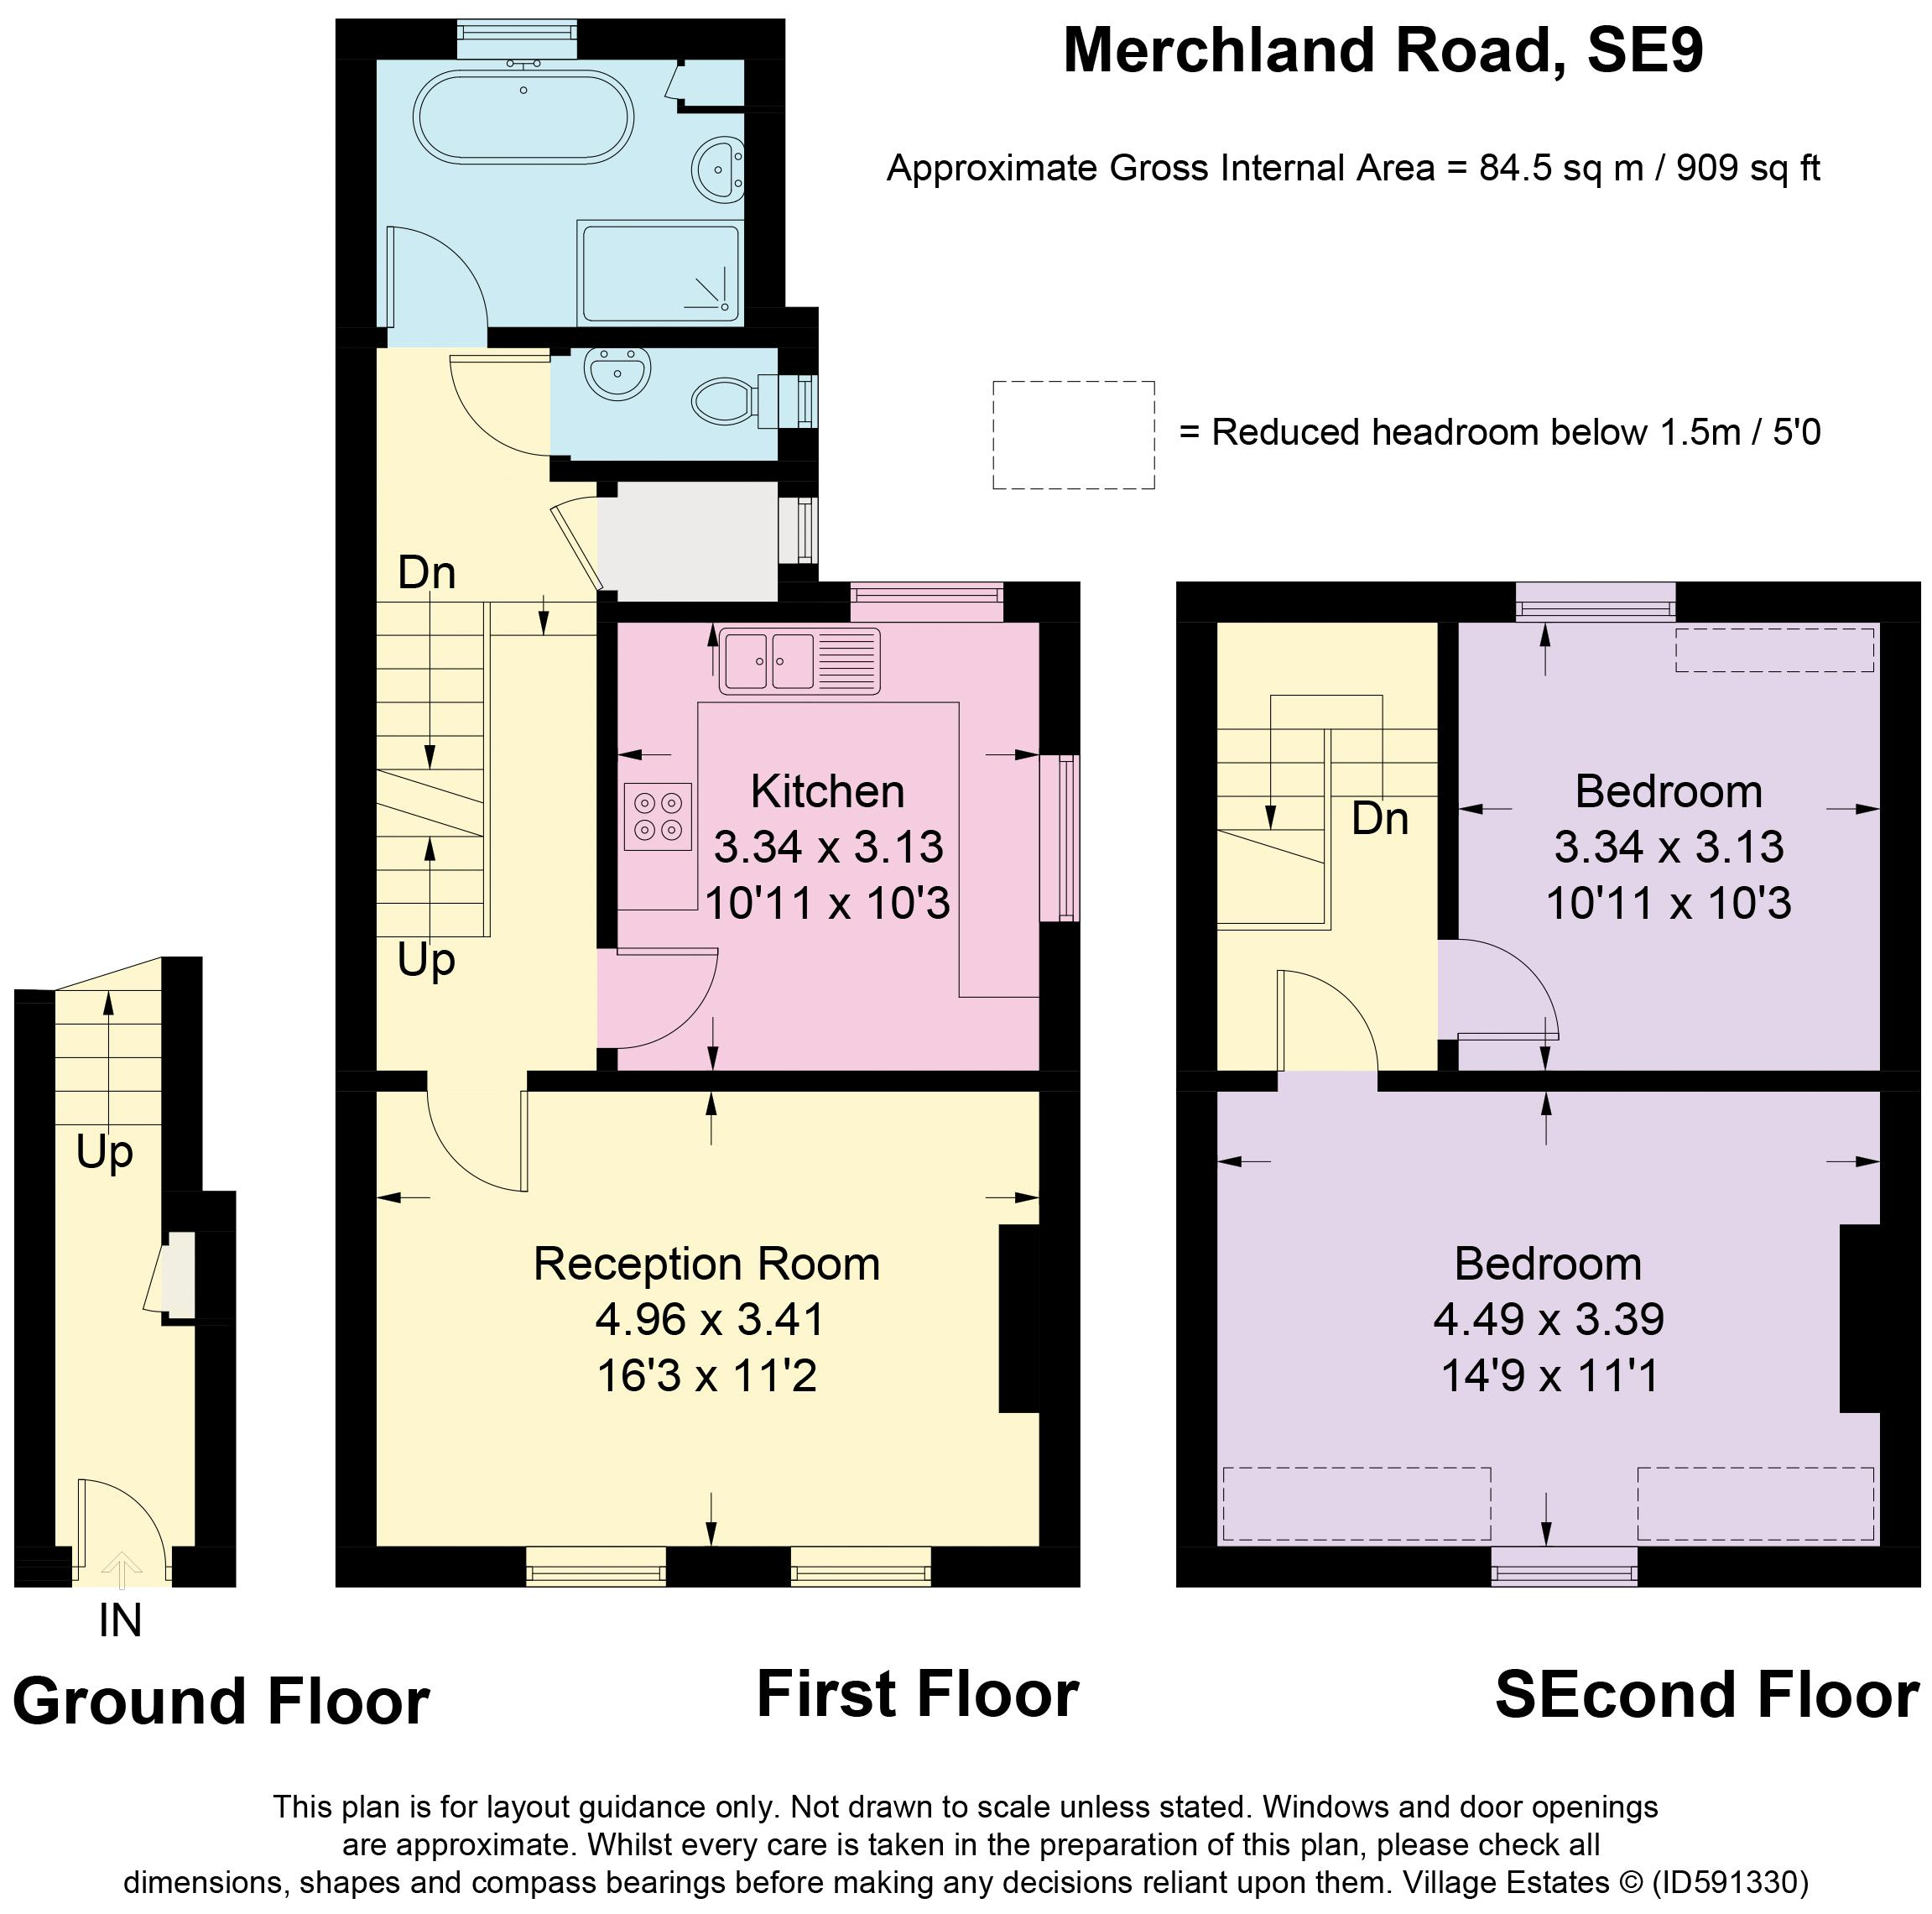 Merchland Road Floorplan